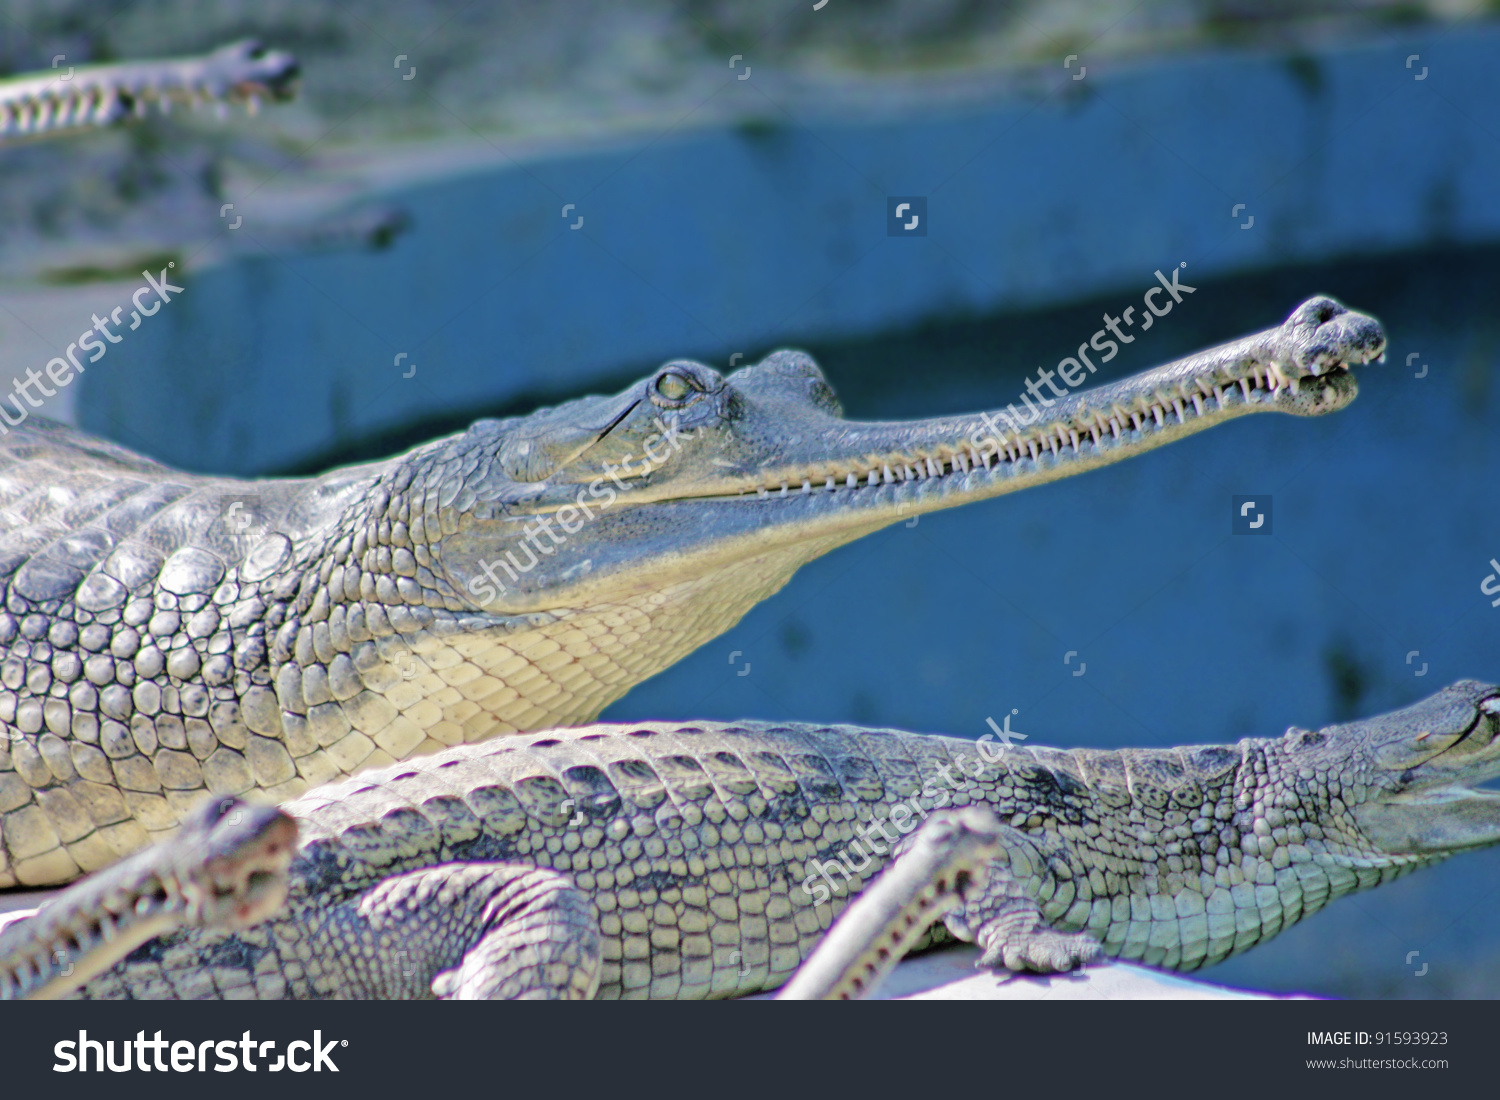 Alligator In The Jaipur Zoo, India Stock Photo 91593923 : Shutterstock.